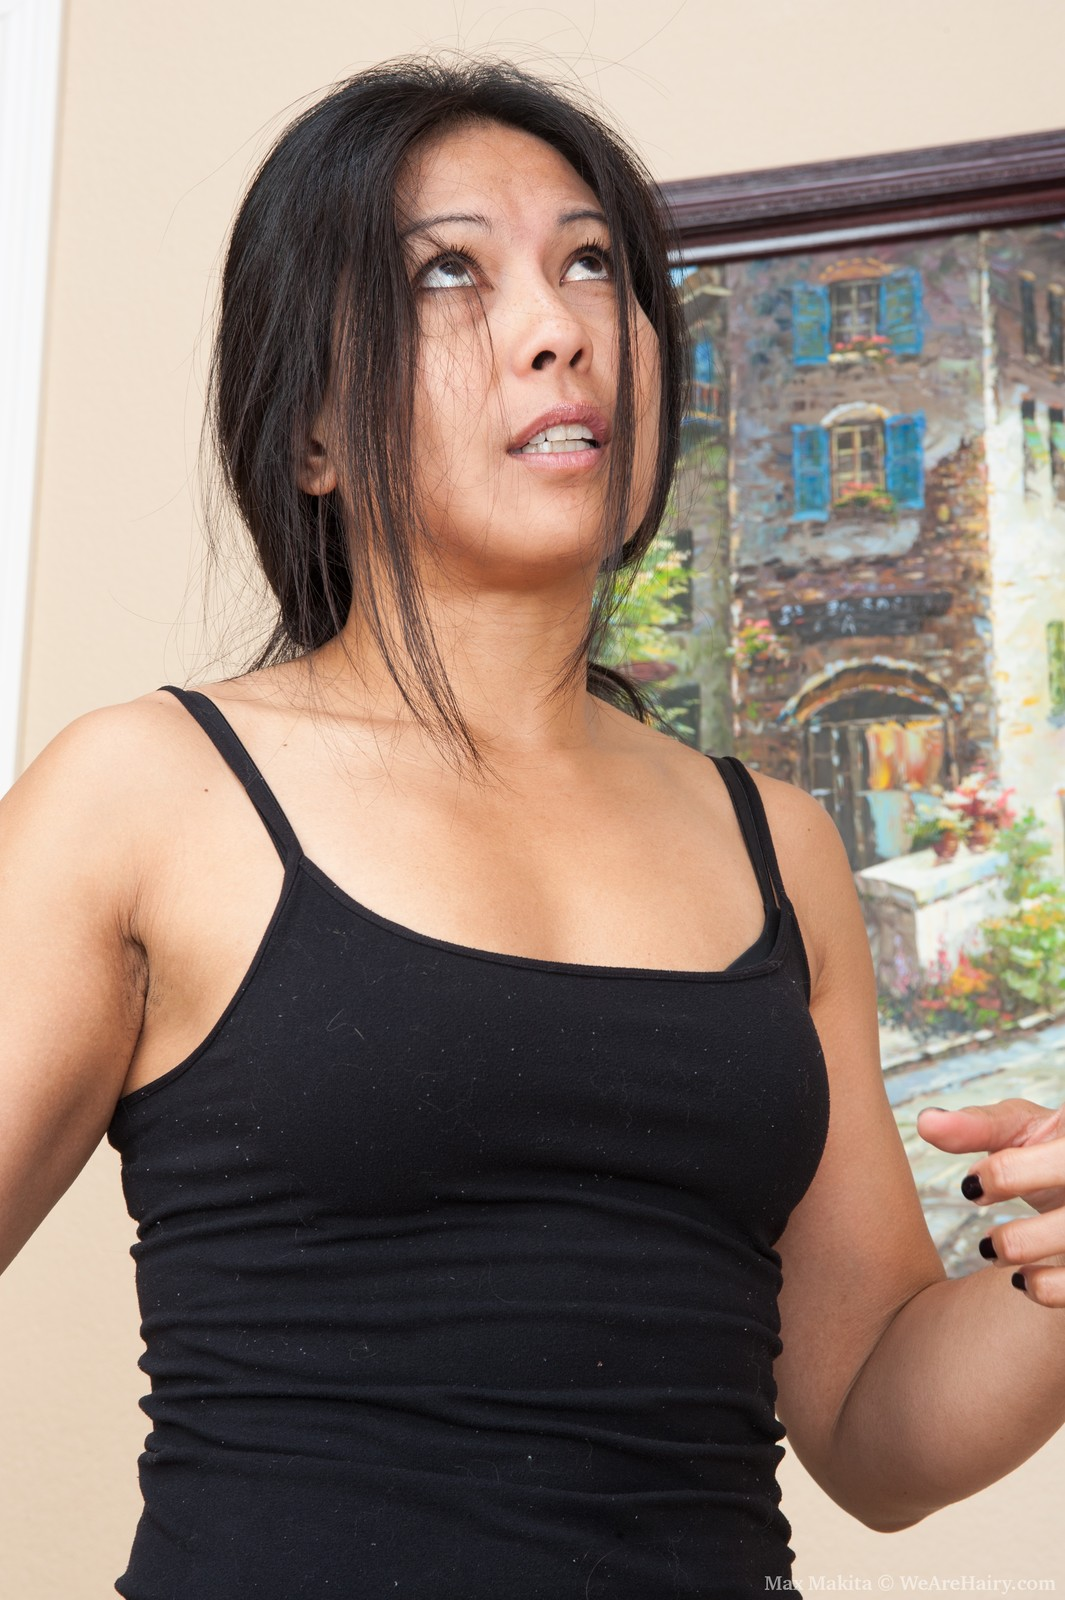 Hairy woman Max Makita is a sexy Asian beauty wearing a